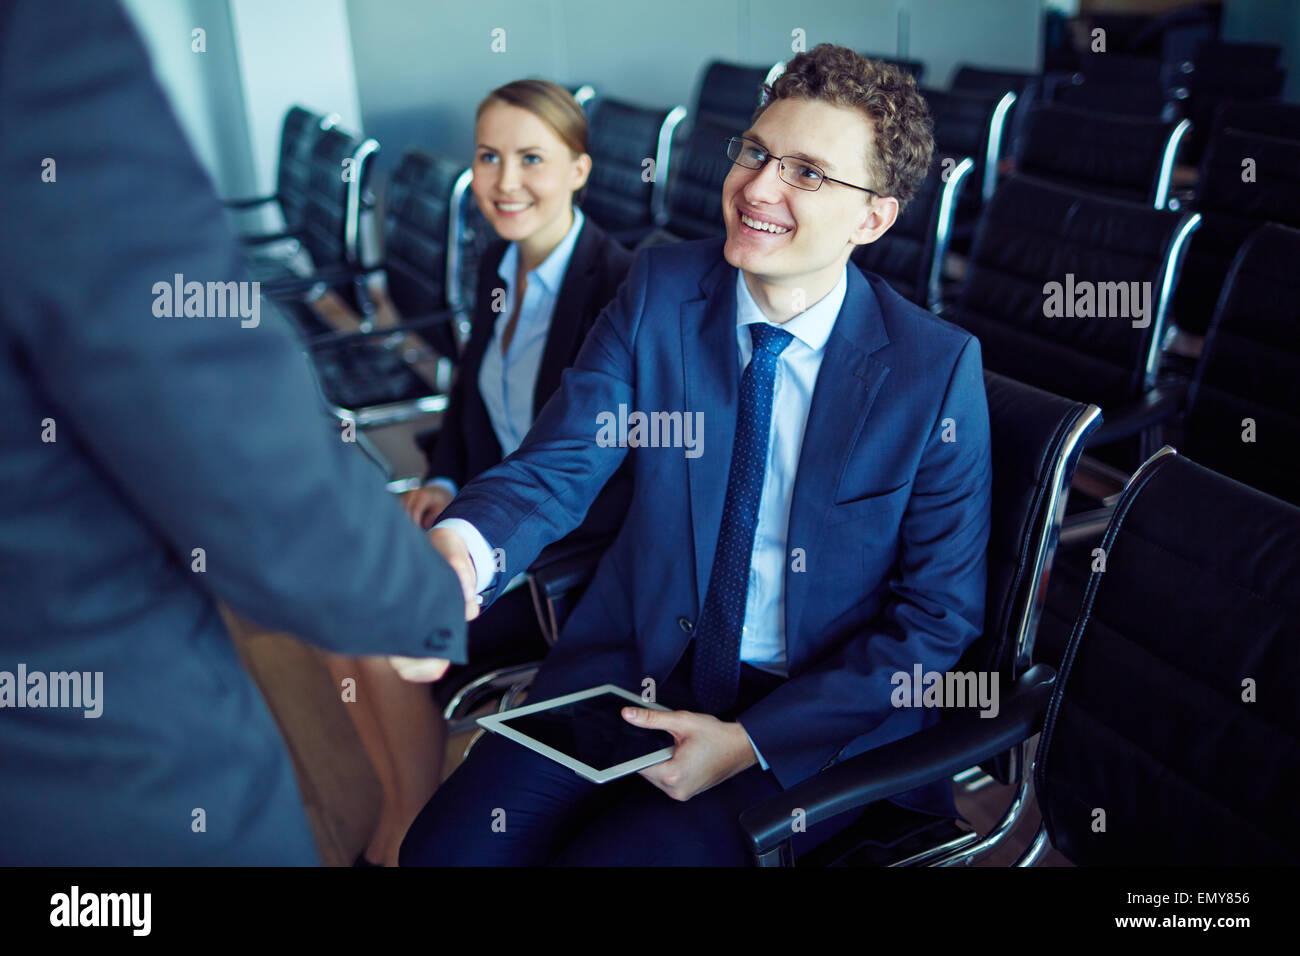 Male employee in suit and eyeglasses greeting his partner at conference - Stock Image